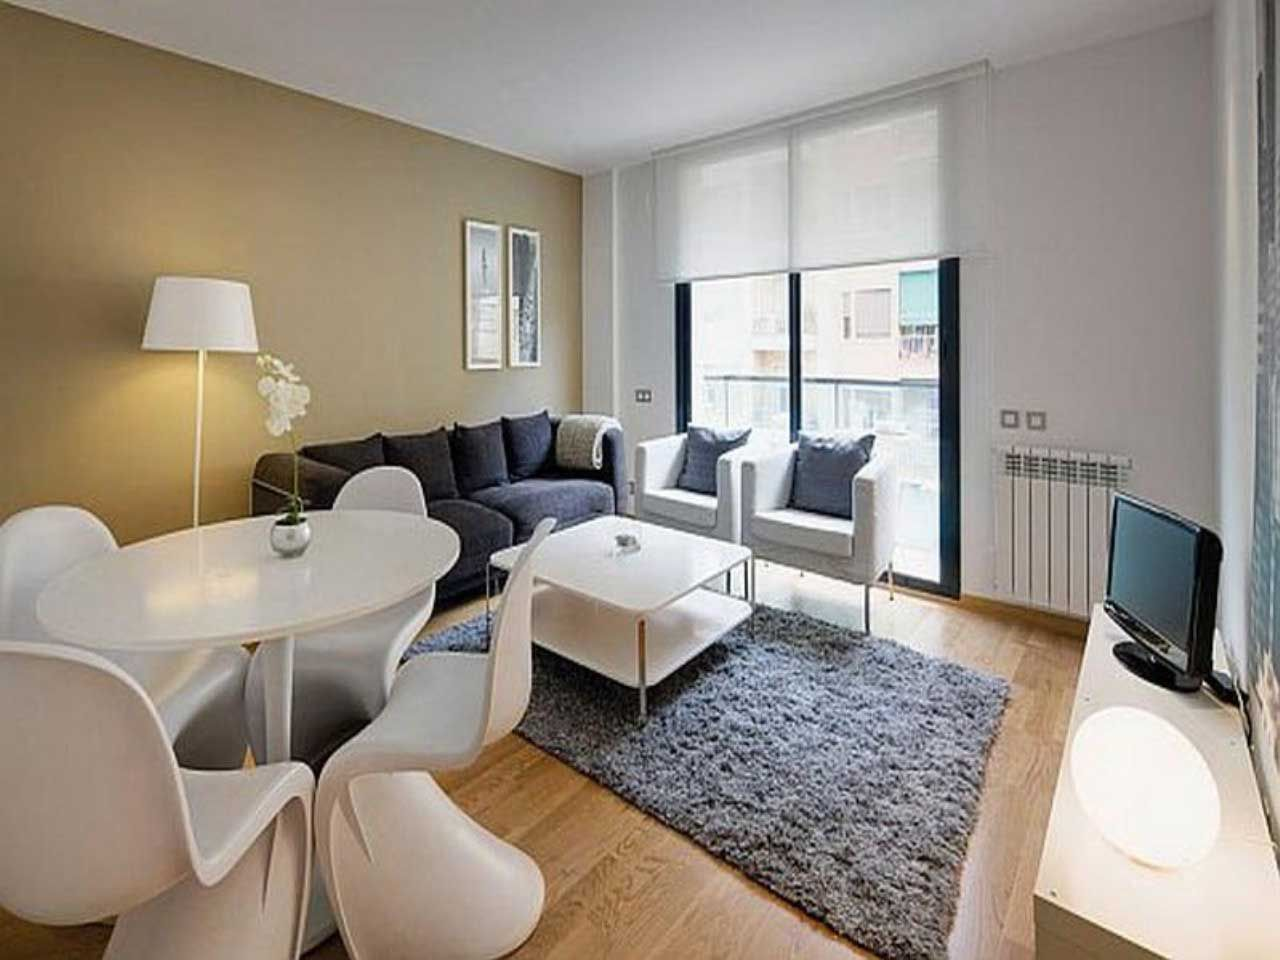 image titled decorate small. It Is Literally Just One Of Several Remarkable Visual Examples In The Post Titled Small Apartment Decorating Design Ideas. Image Decorate